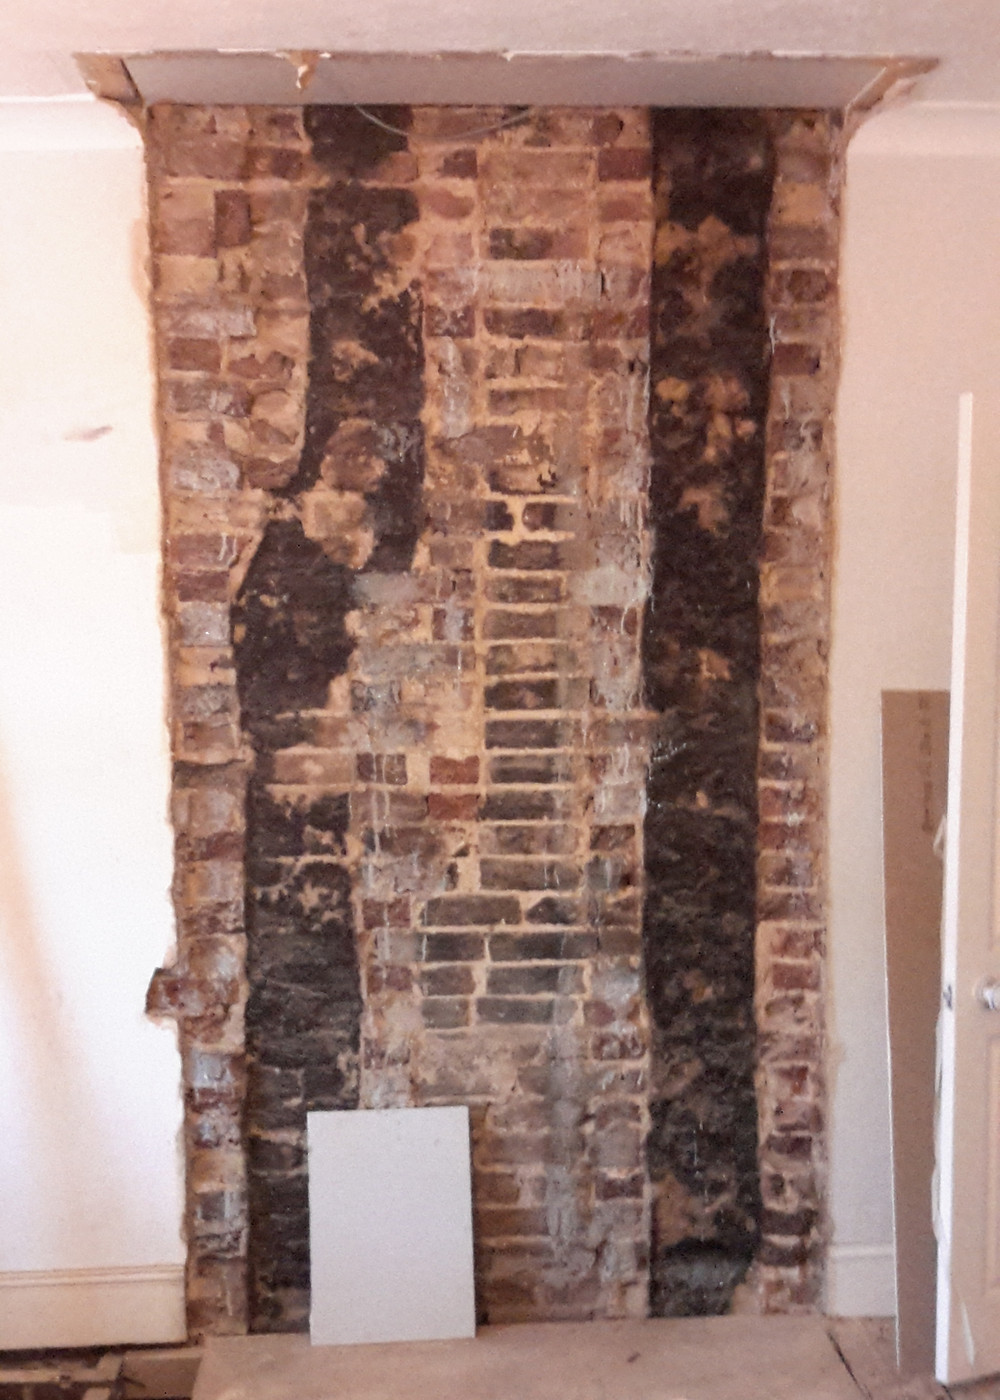 Chimney breasts removal